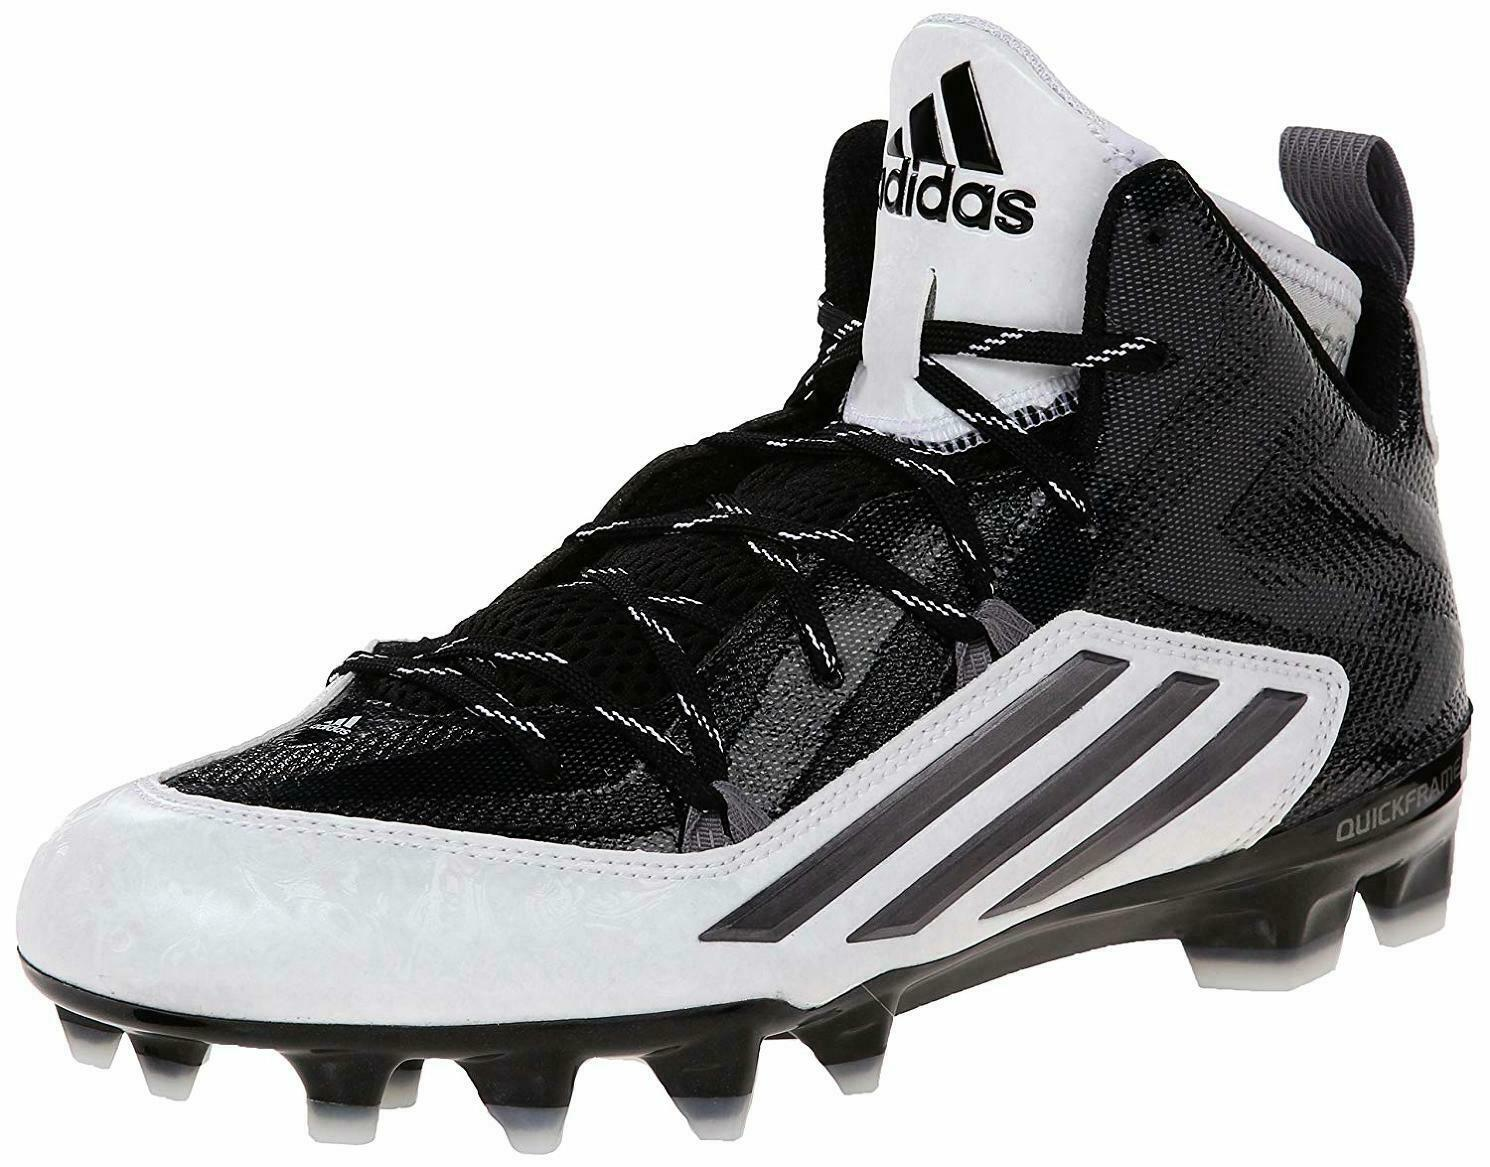 Adidas Performance Men's Crazyquick 2.0 Mid FTball Cleat